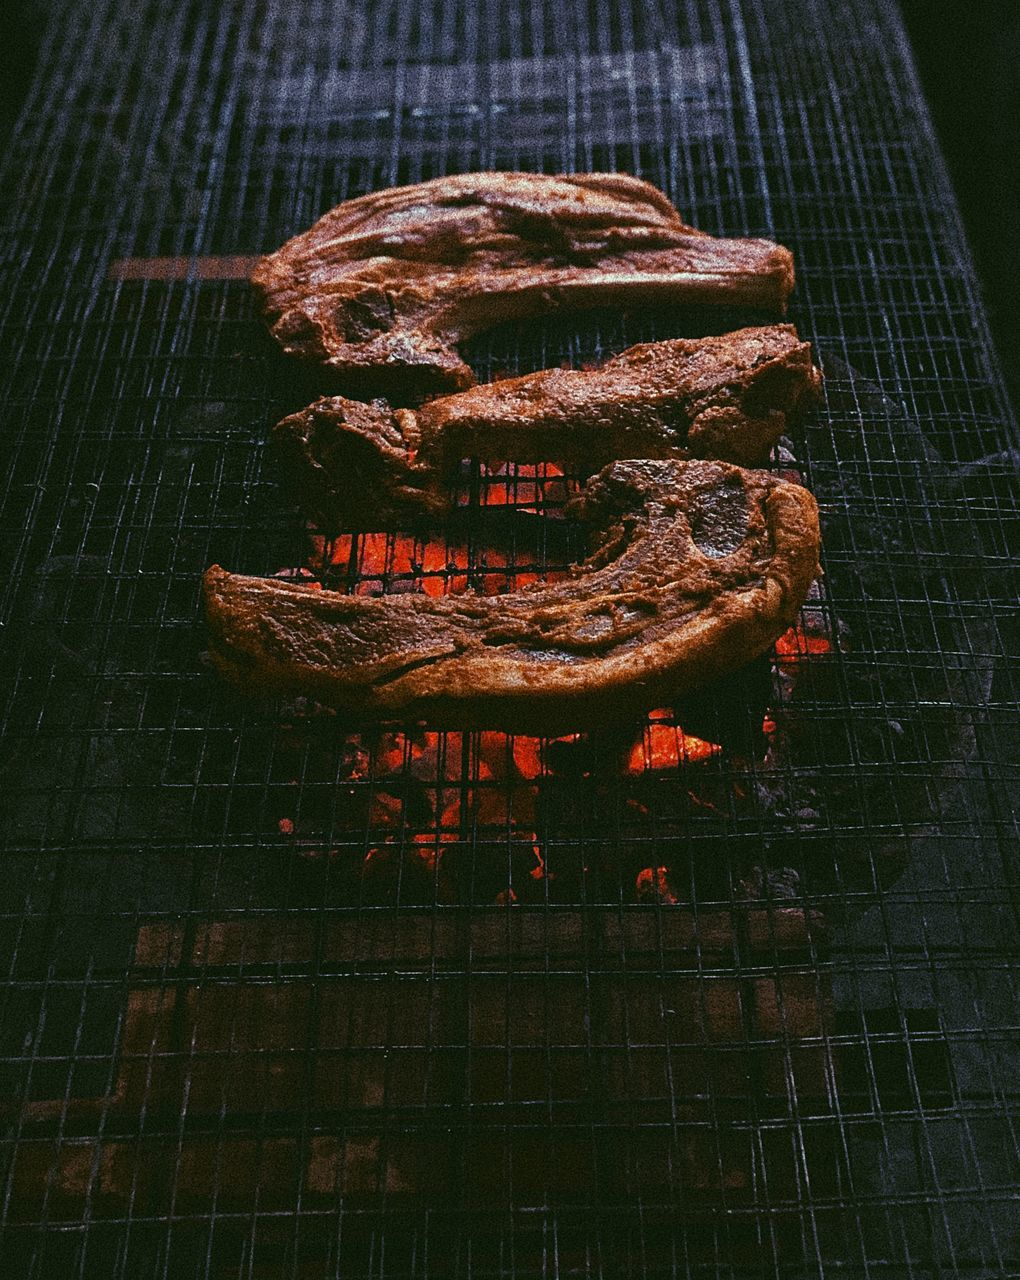 CLOSE-UP OF AN ANIMAL ON GRILL